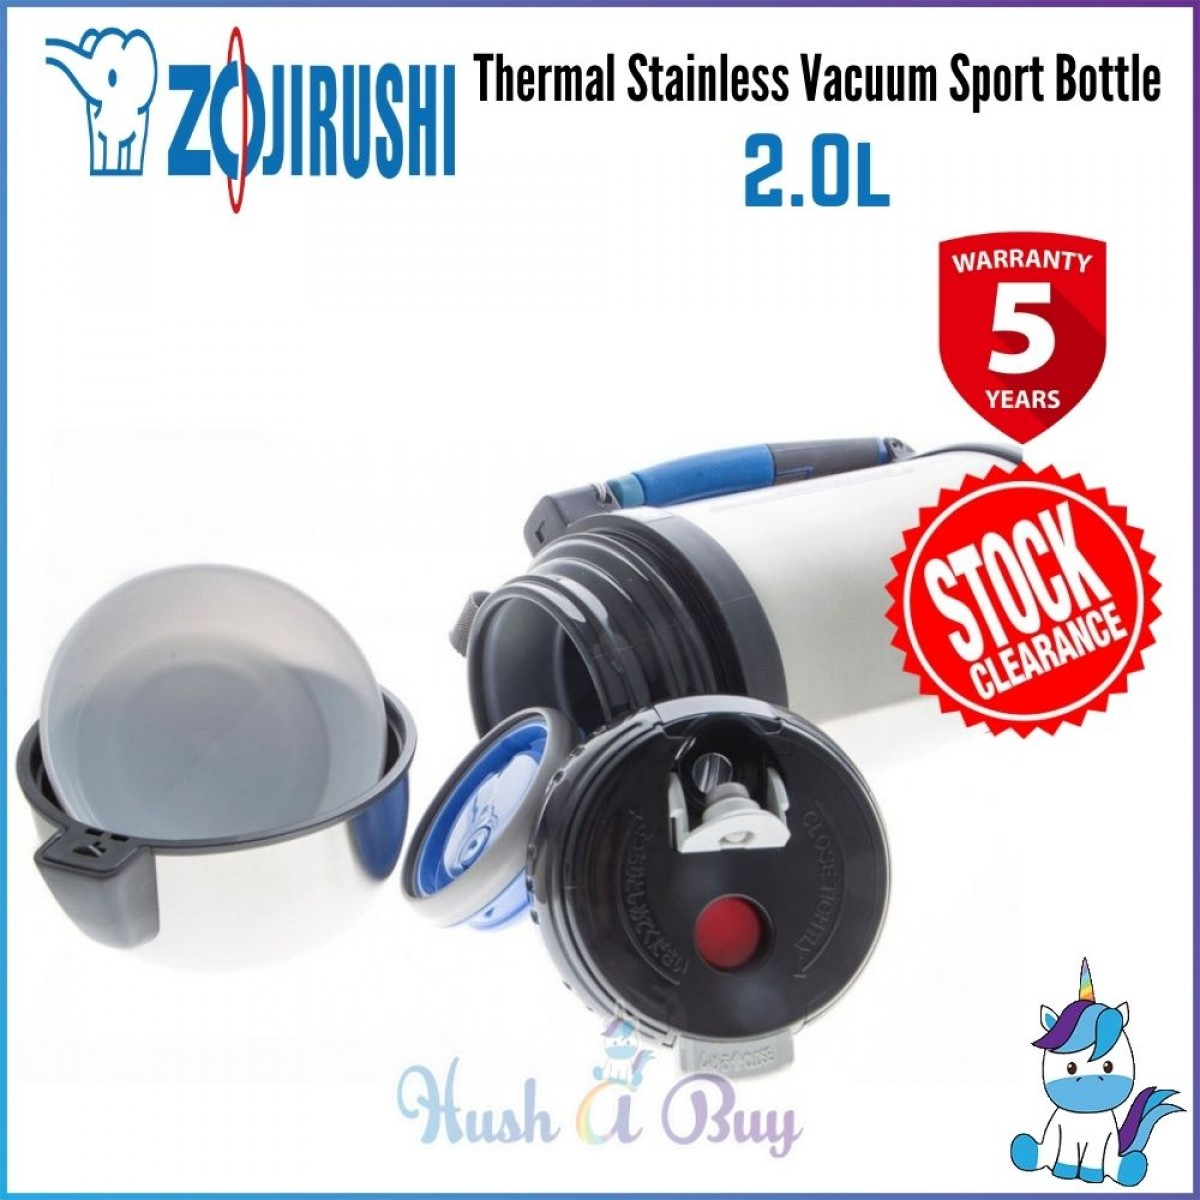 Zojirushi Thermal Stainless Vacuum Sport Bottle with Cup 2.0L [STOCK CLEARANCE]